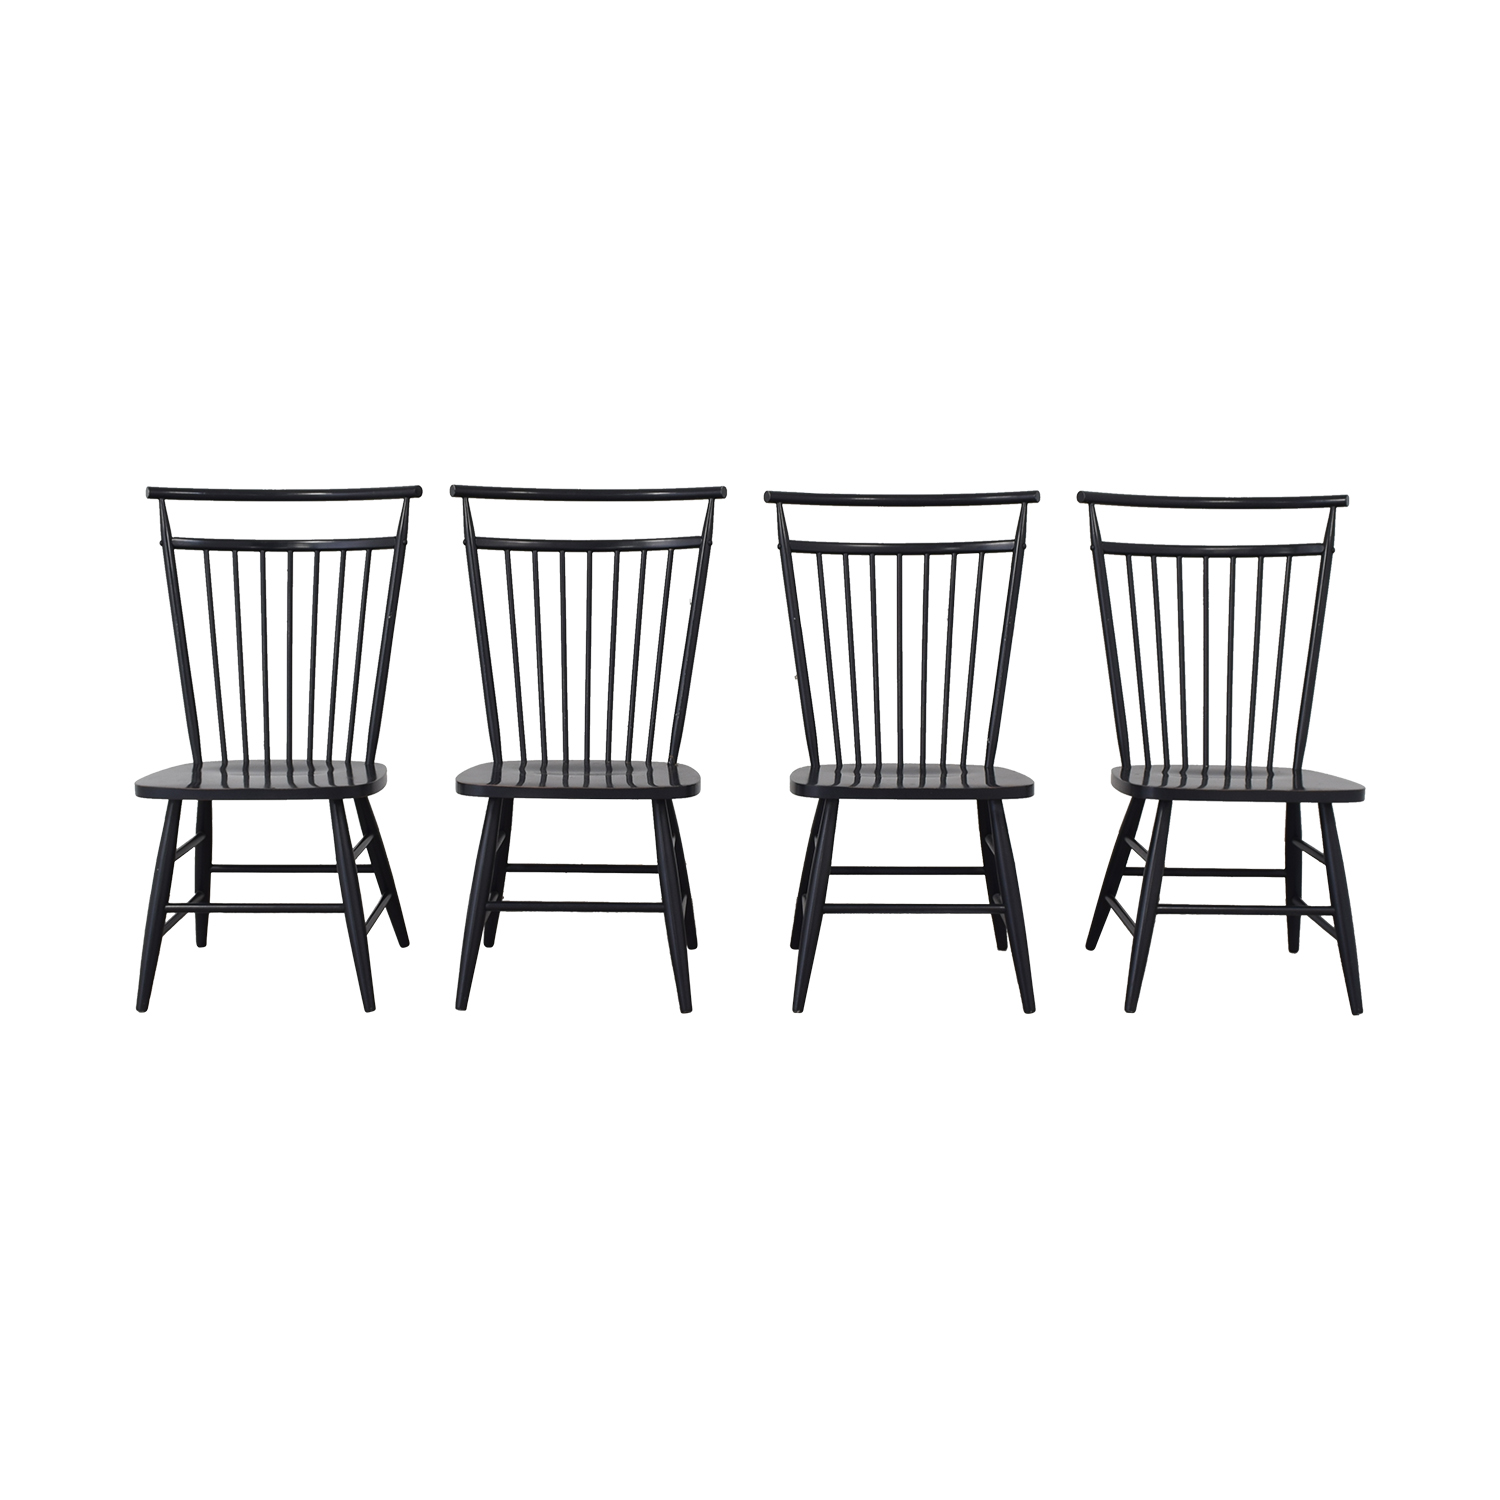 Canadel Canadel Dining Chairs nyc